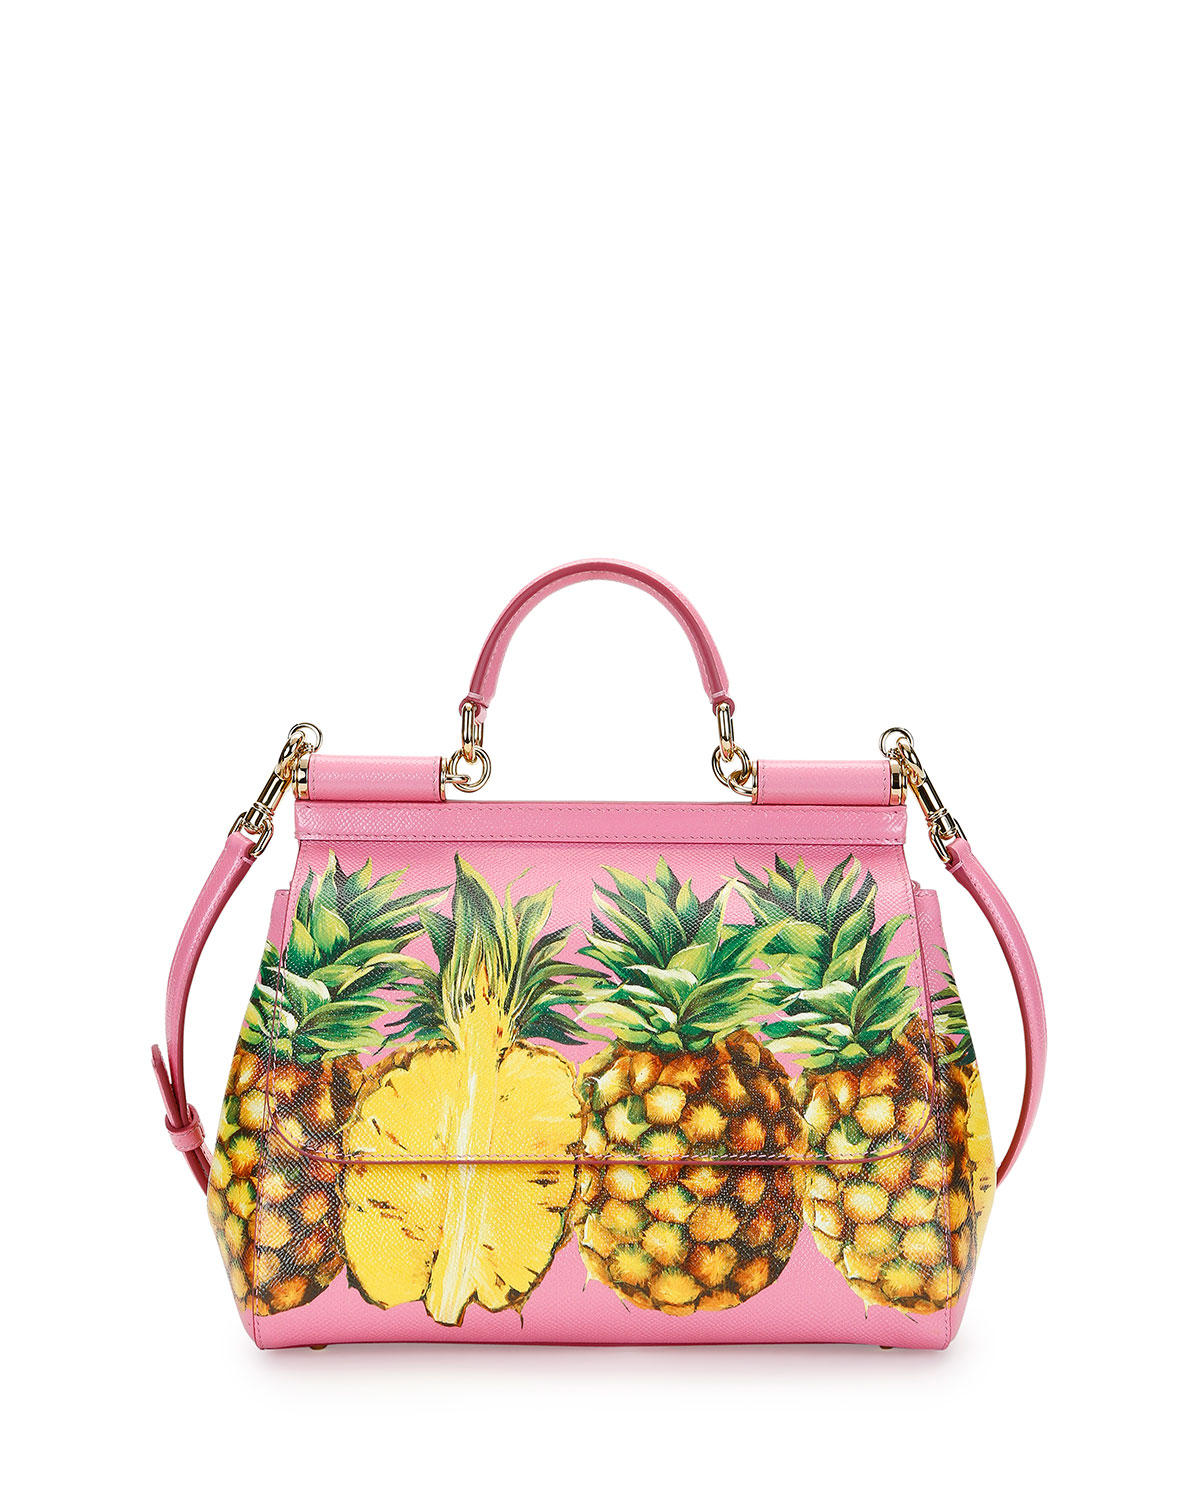 e880abc4701b43 Dolce & Gabbana Miss Sicily Medium Canvas Pineapple Satchel Bag, Pink/Multi